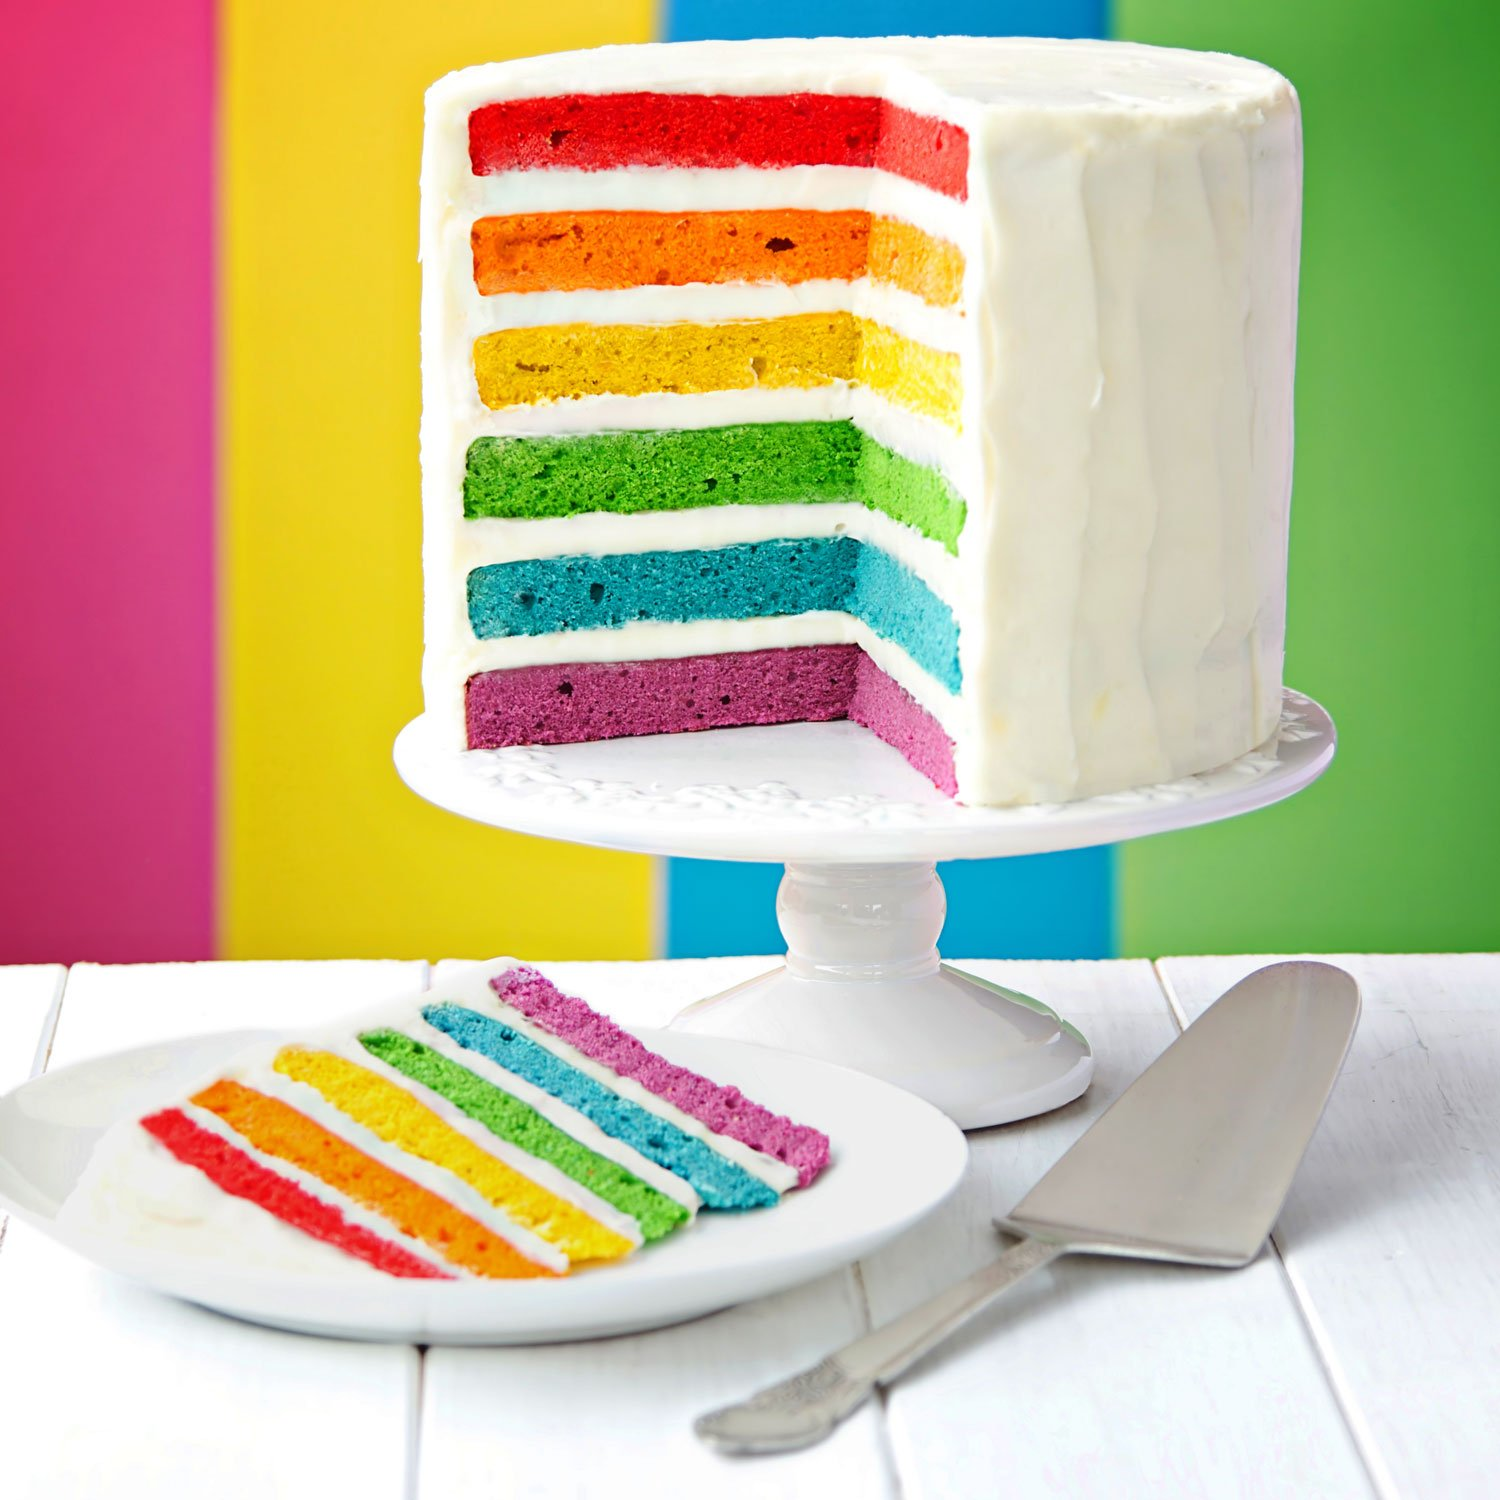 Amazon.com : 6 Food Color Neon US Cake Supply by Chefmaster Liqua ...